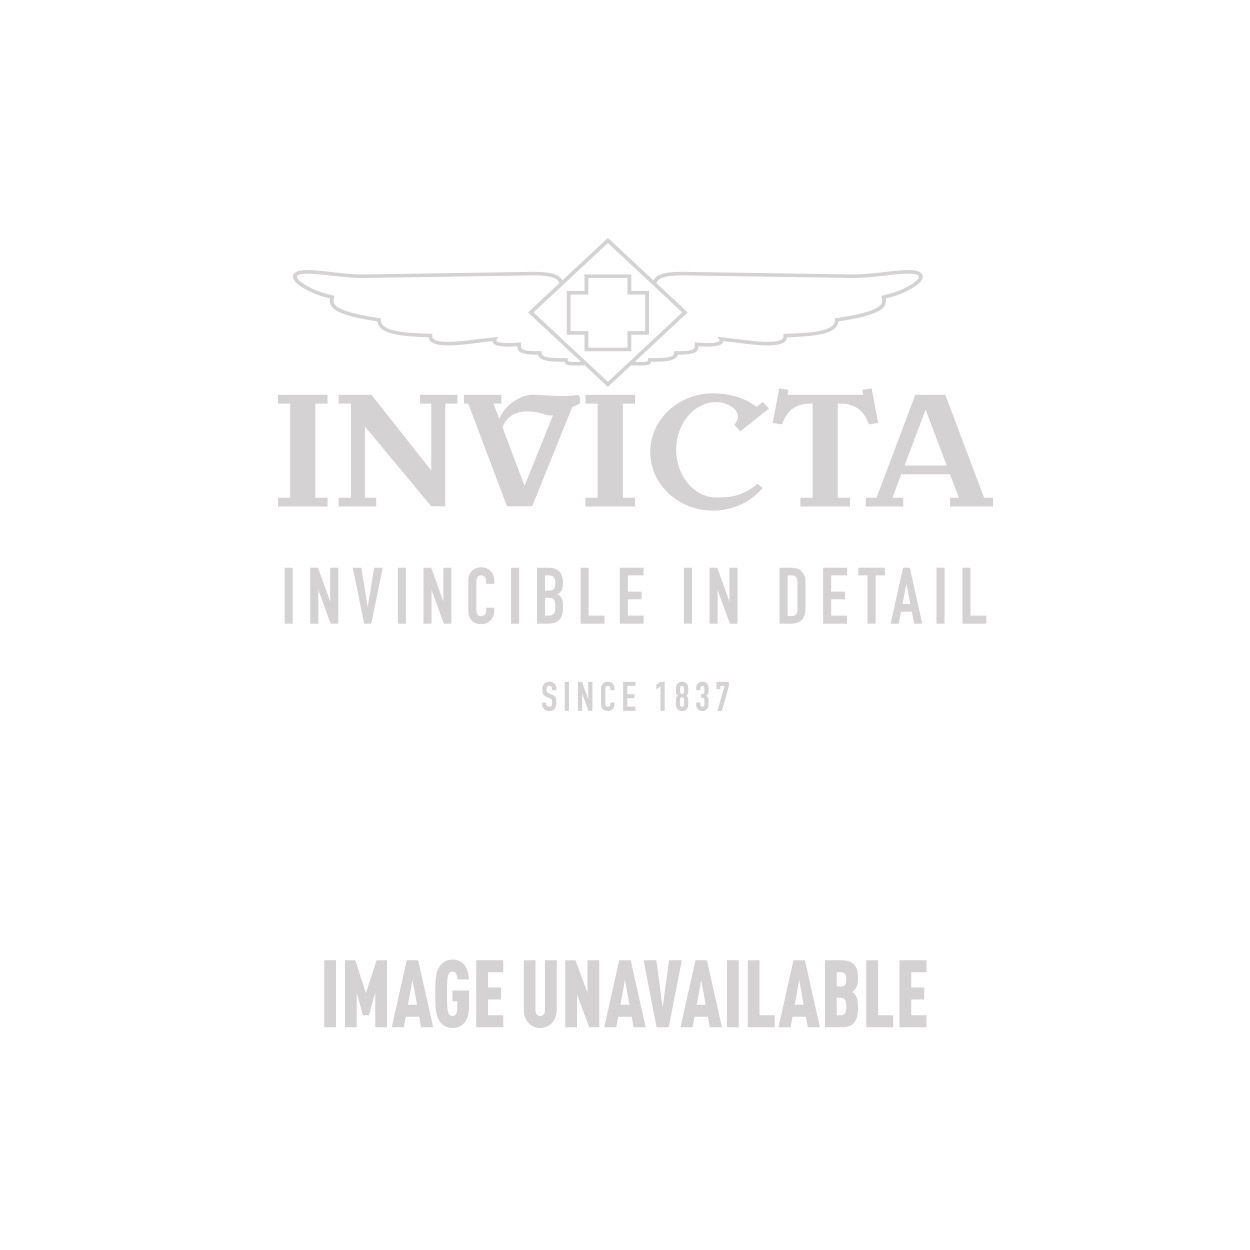 Invicta Specialty Swiss Movement Quartz Watch - Black case with Steel, Black tone Stainless Steel band - Model 6407